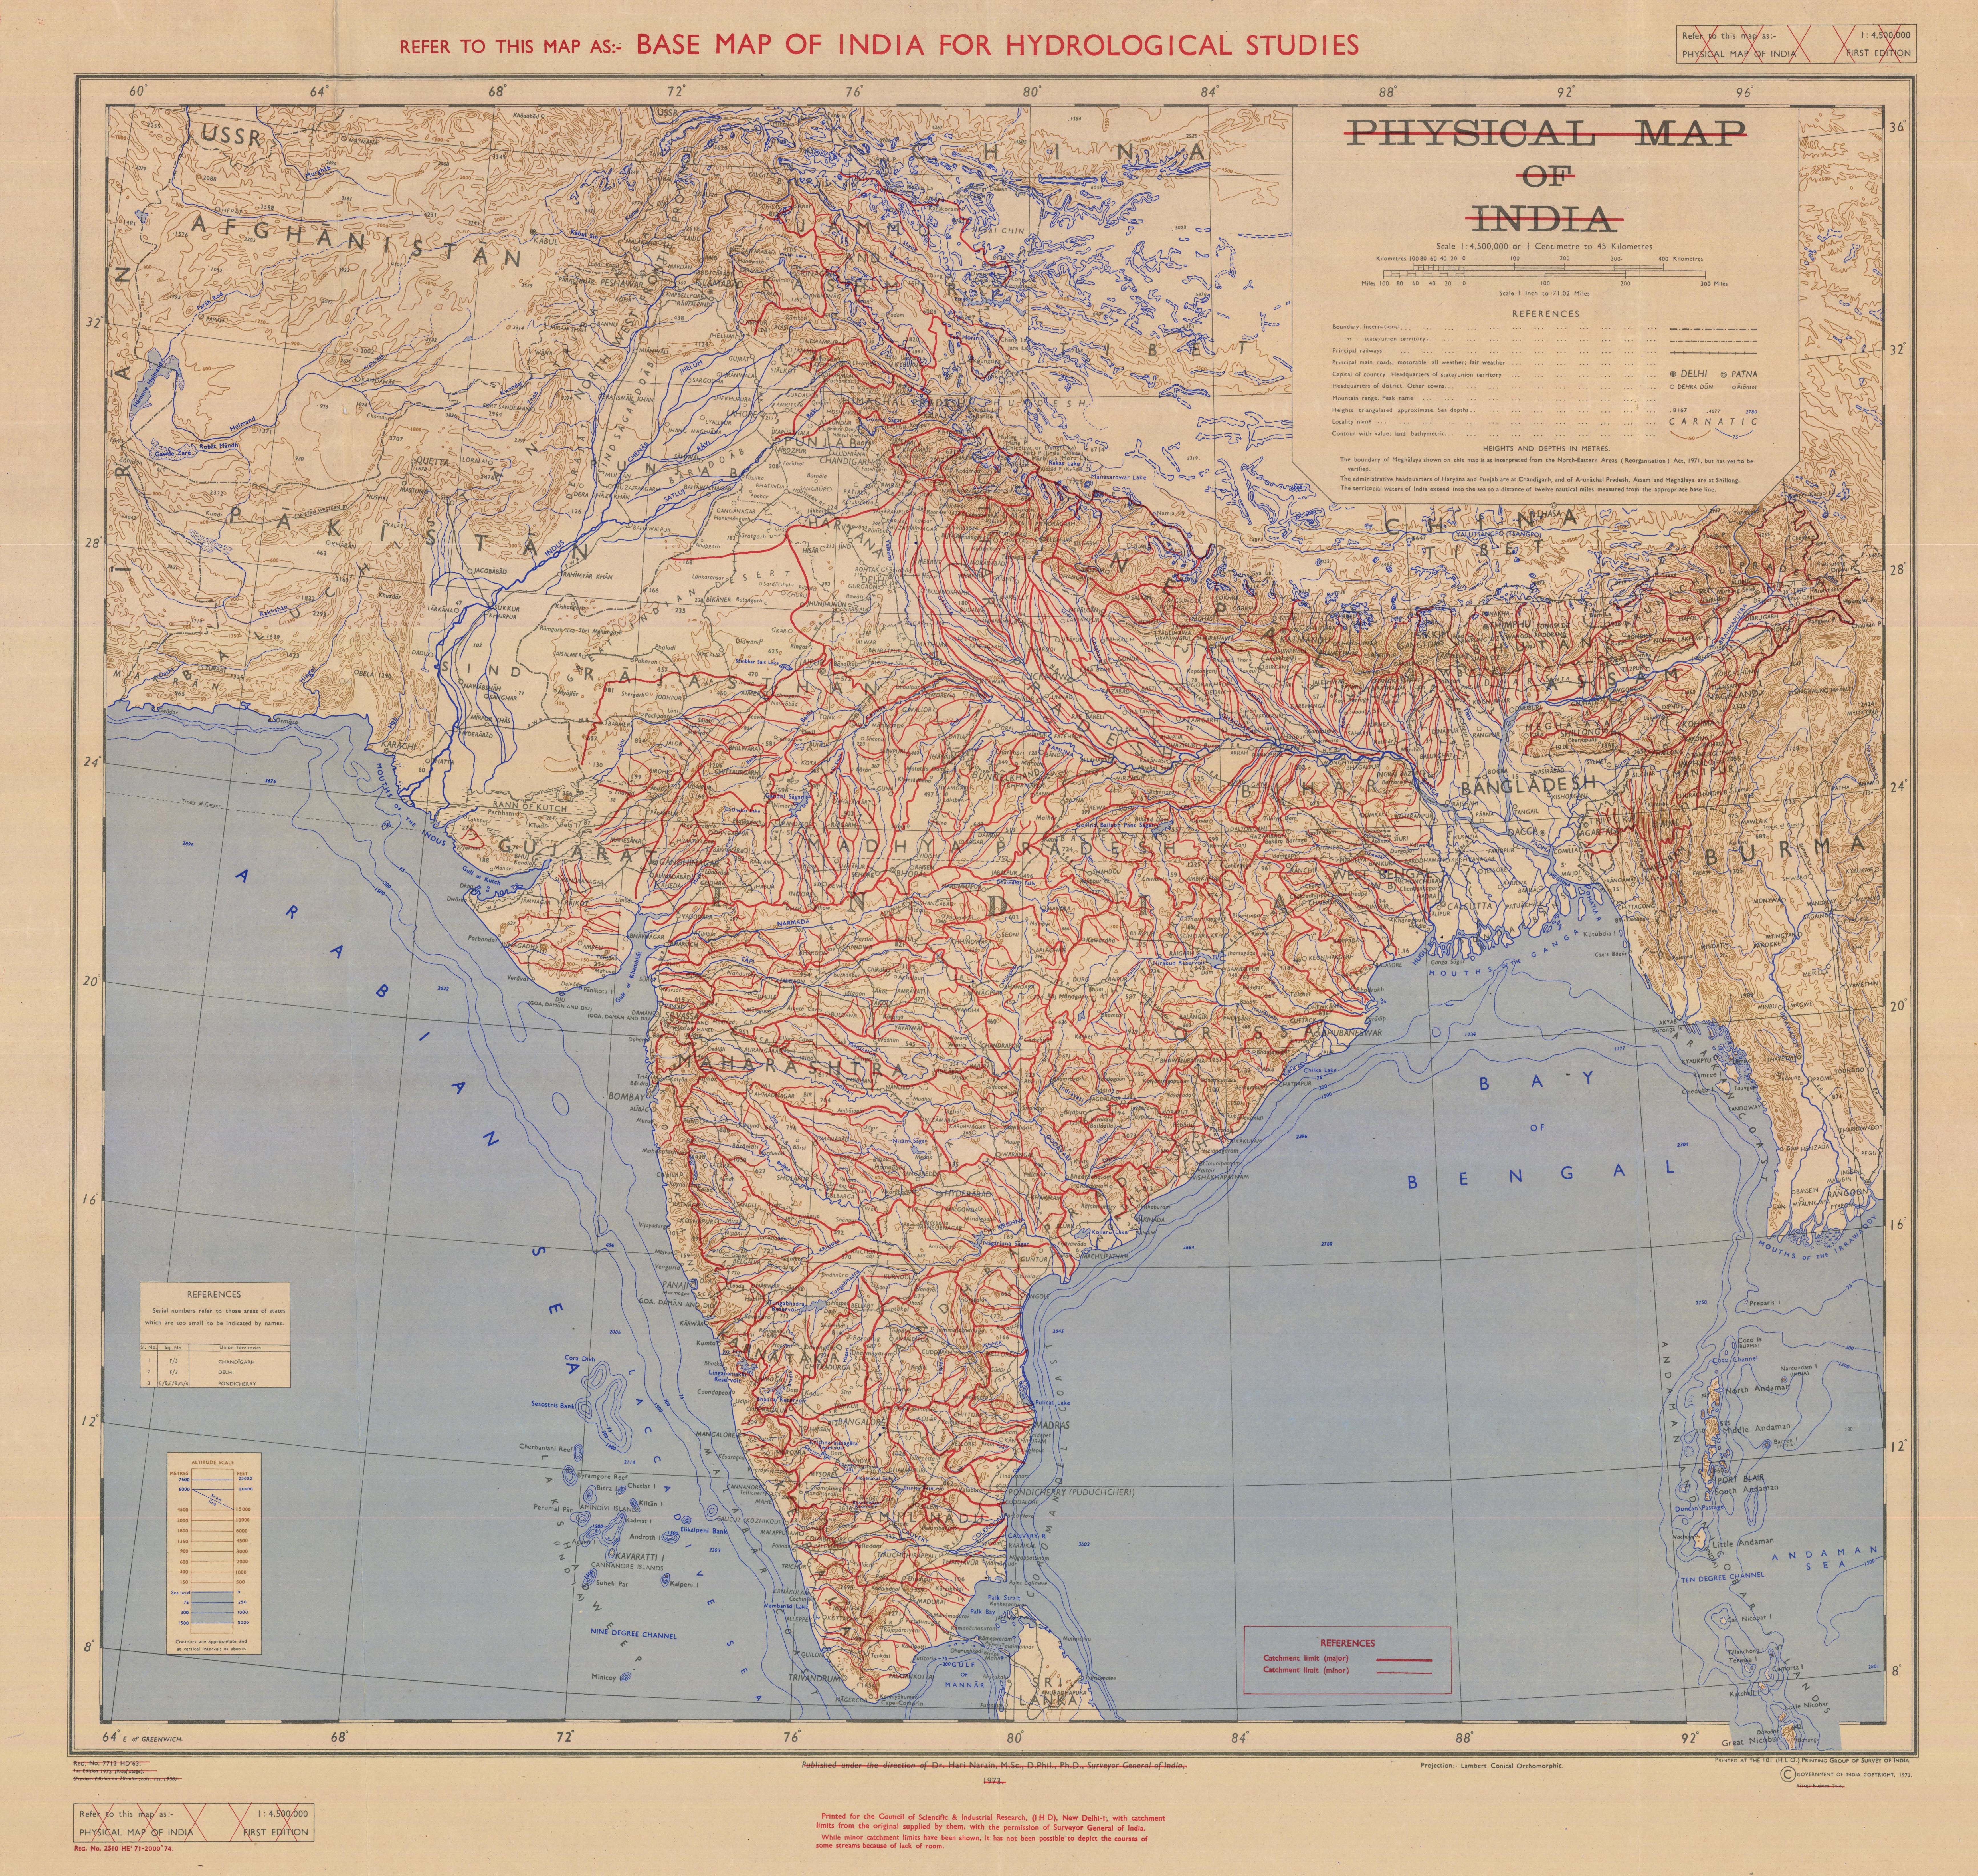 Base map of india for hydrological studies esdac european base map of india for hydrological studies download gumiabroncs Gallery